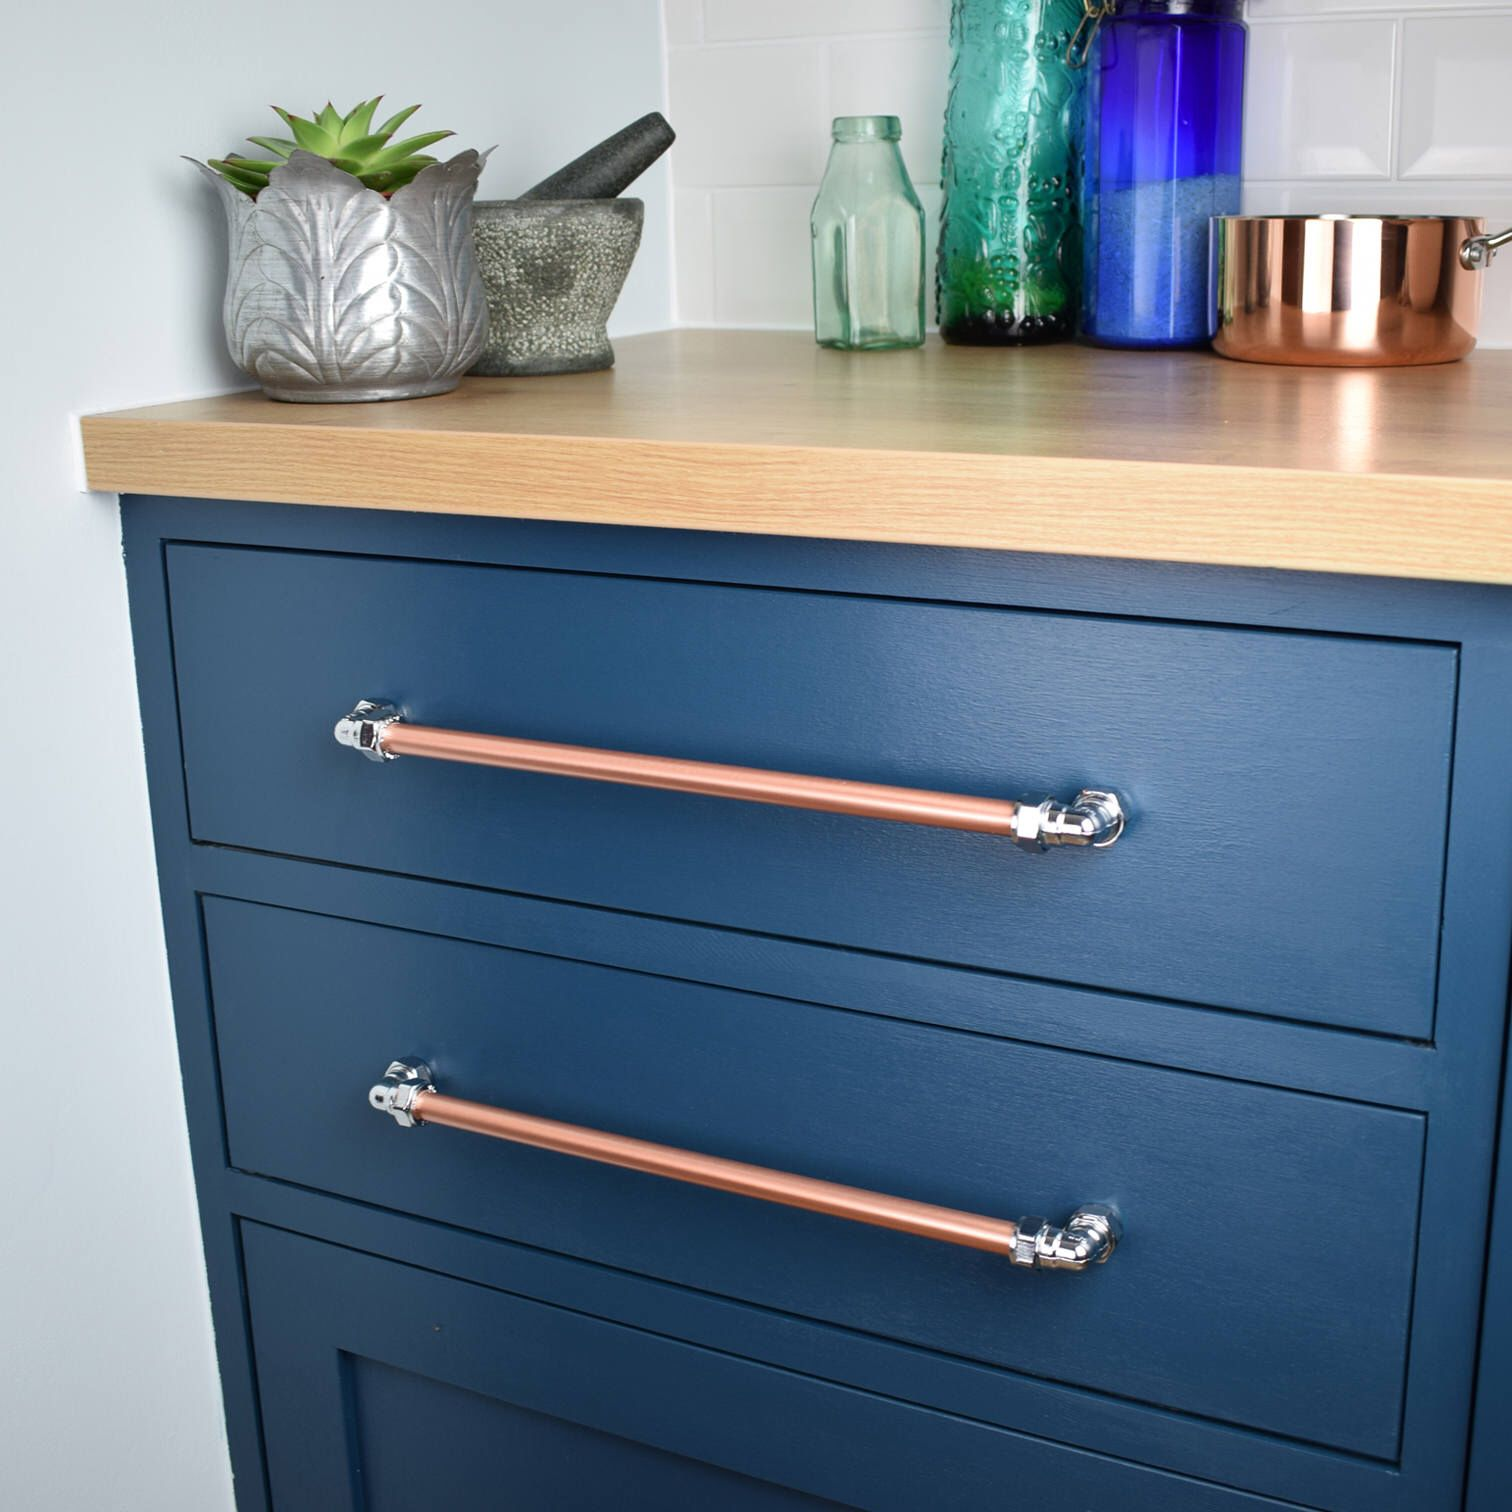 Pin On Copper Furniture And Home Stuff